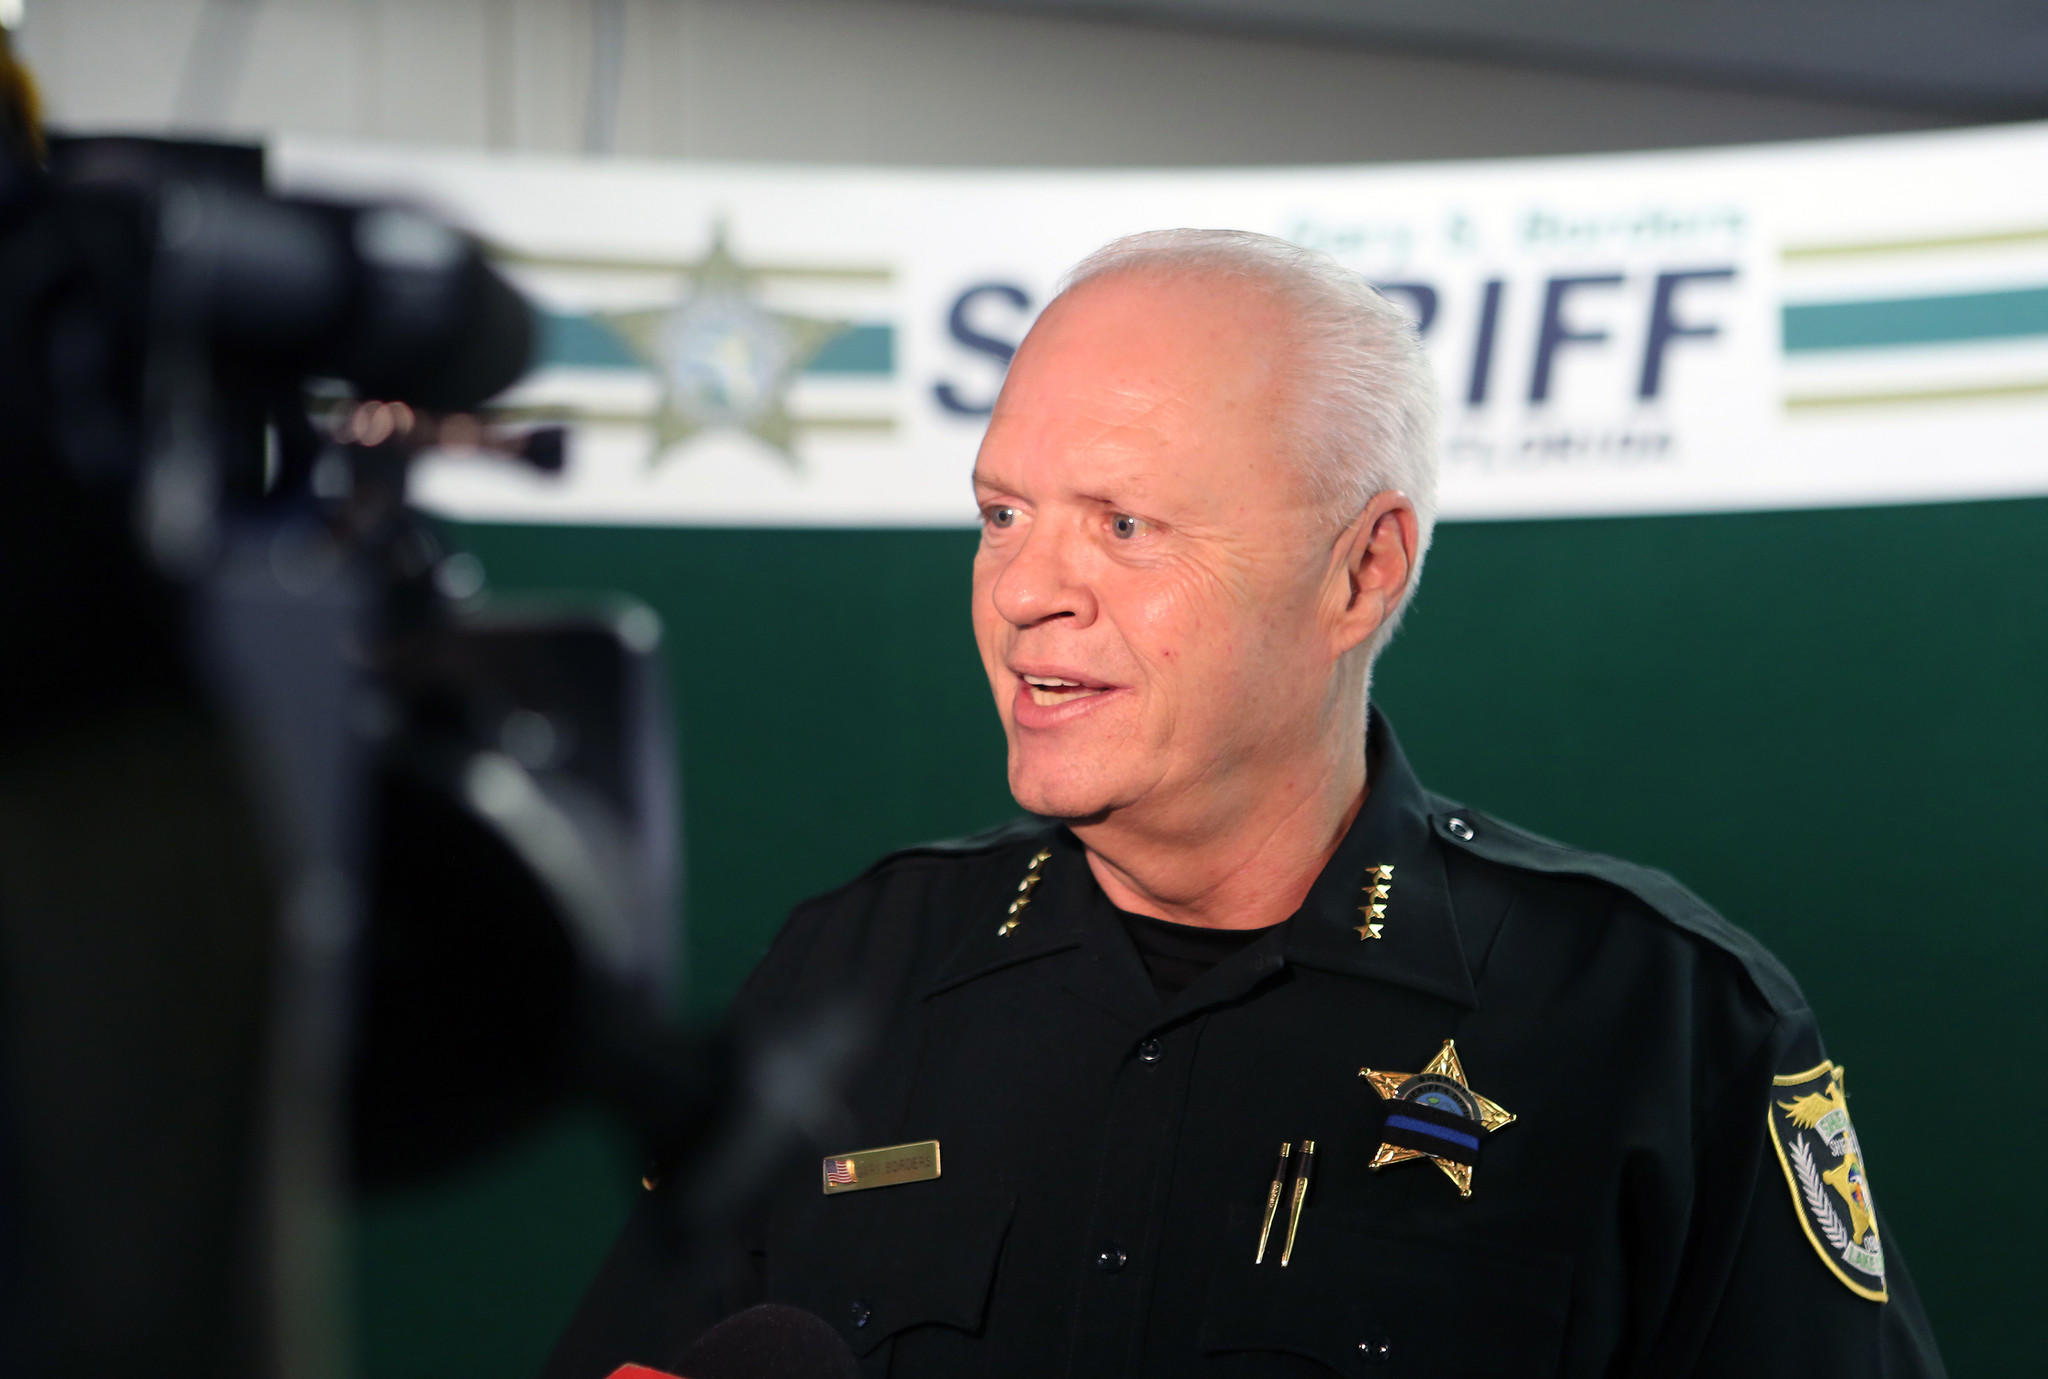 Sheriff Gary Borders answers questions during a press conference in Tavares, on Wednesday, February 12, 2014. Lake County Sheriff's cyber crime detectives arrested more than 20 suspects during an undercover sting operation in Clermont.